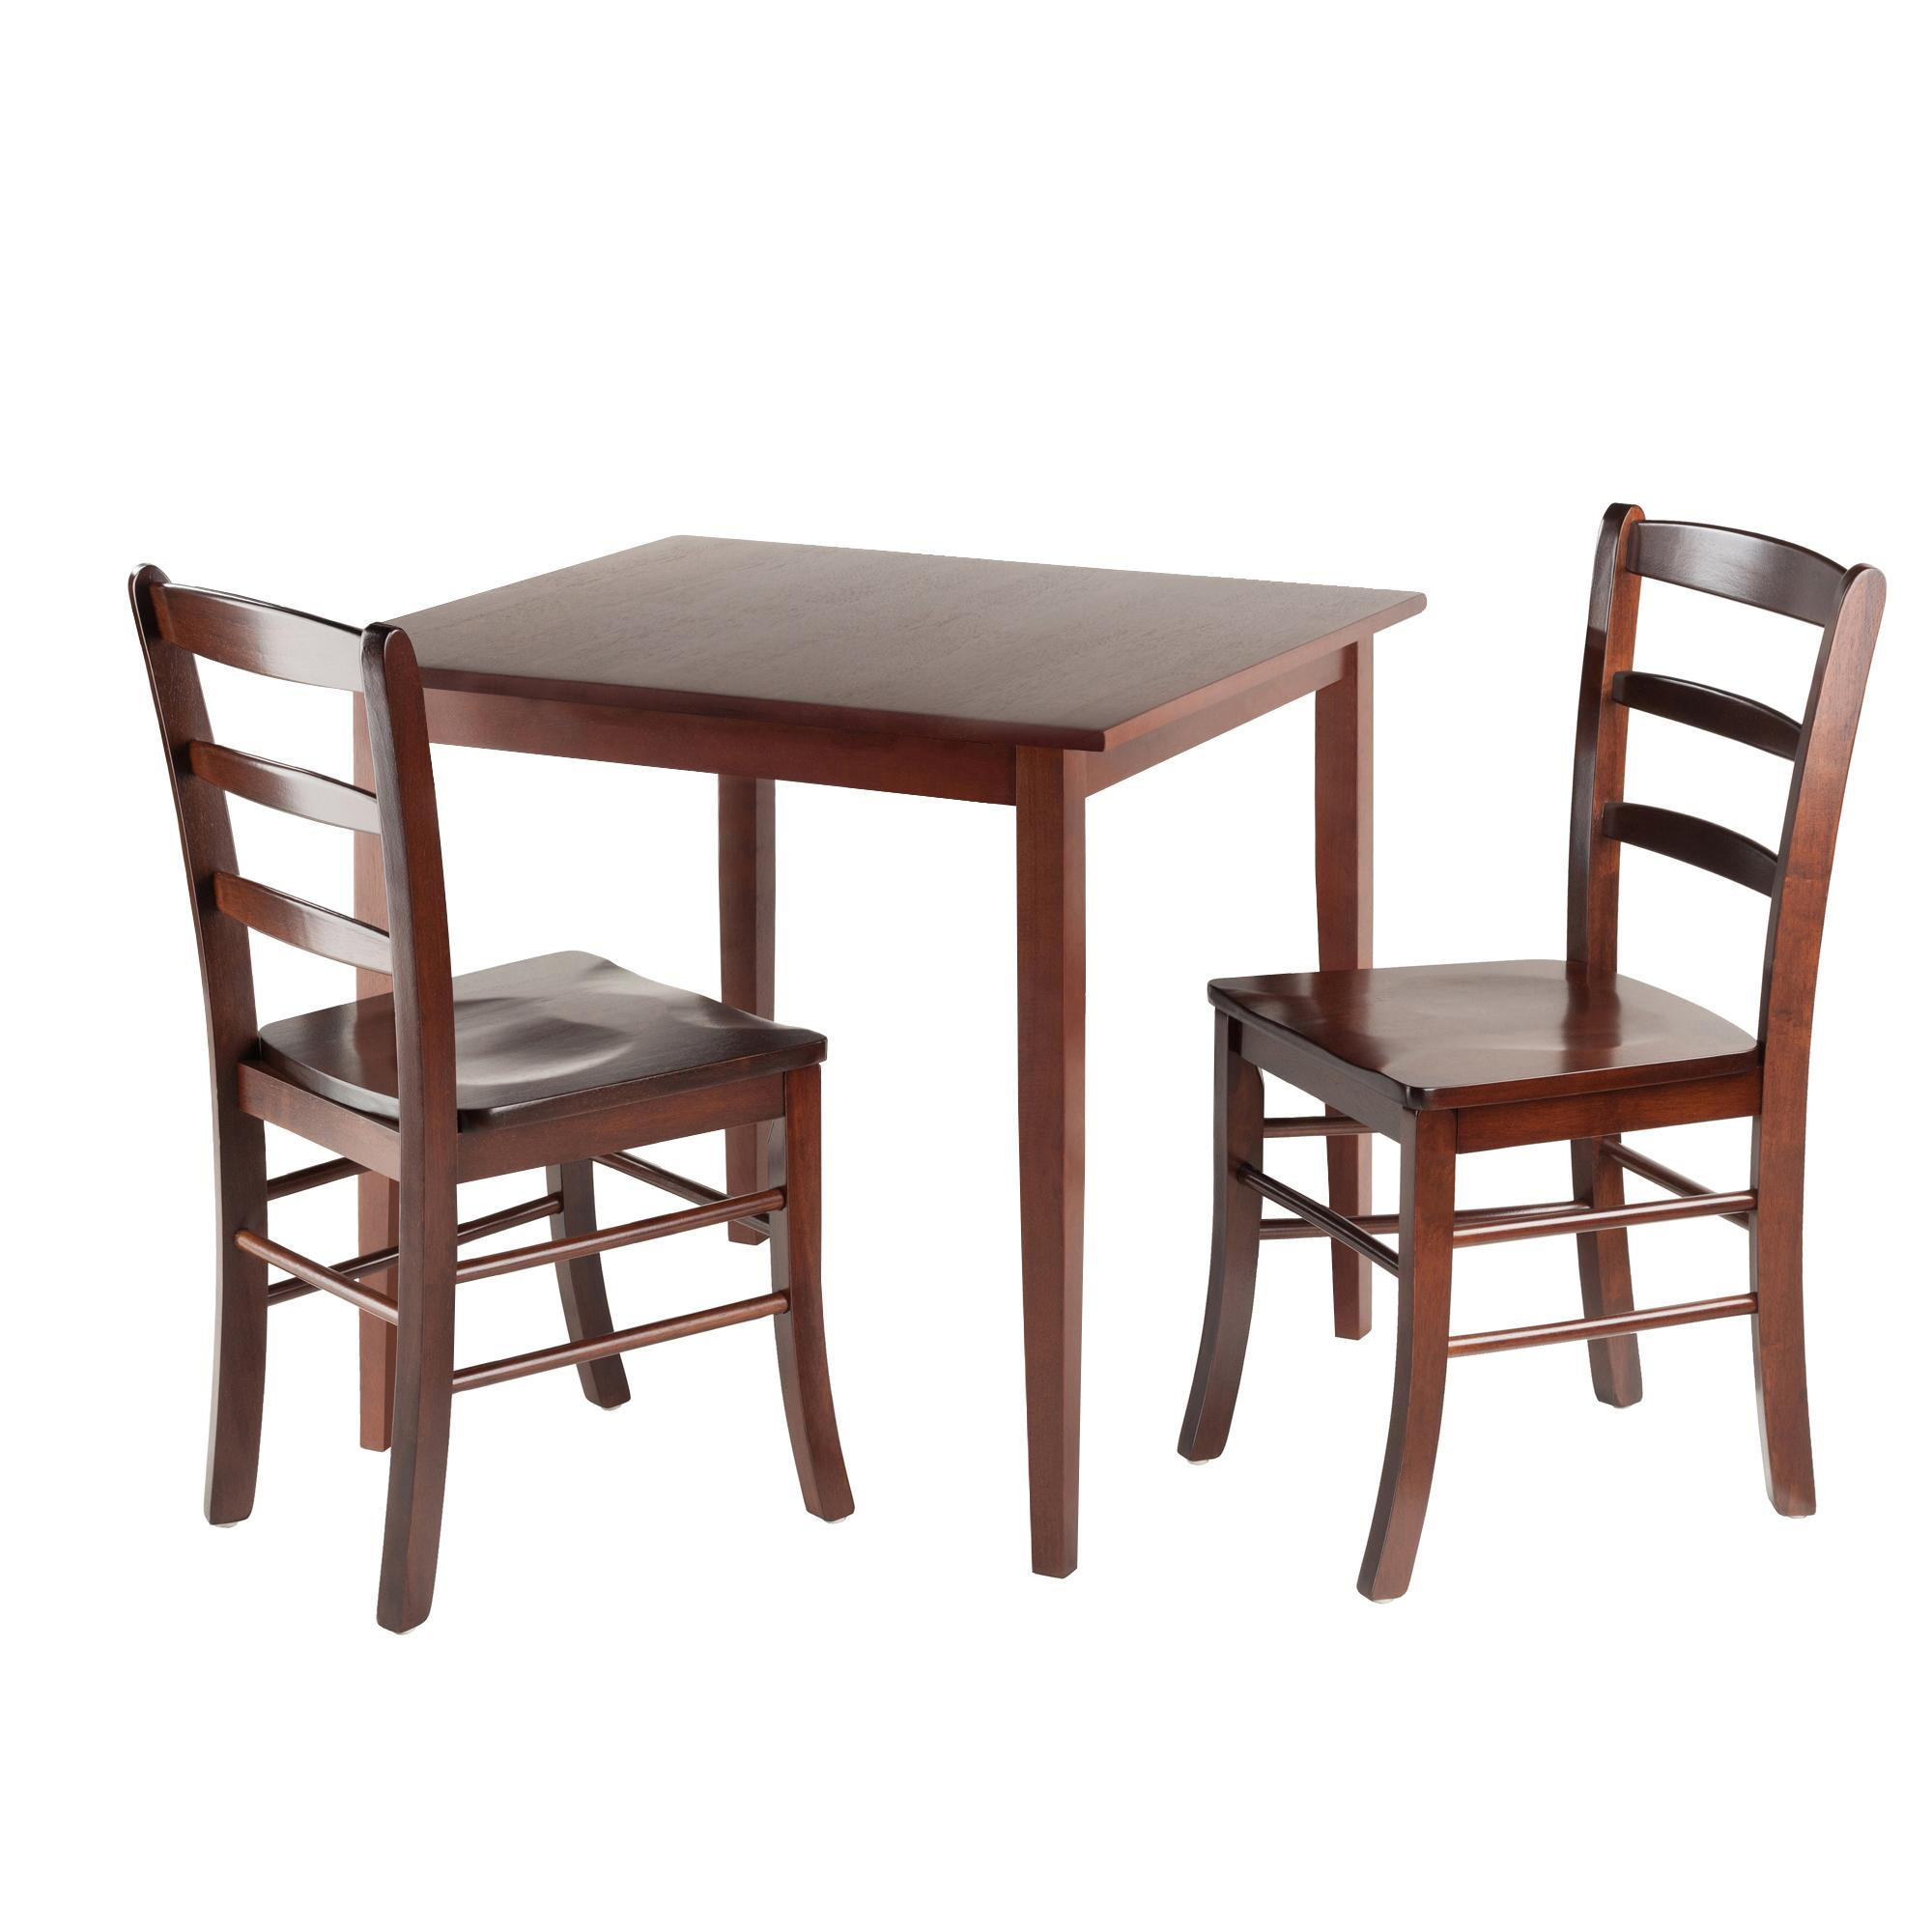 Dining Table On Amazon